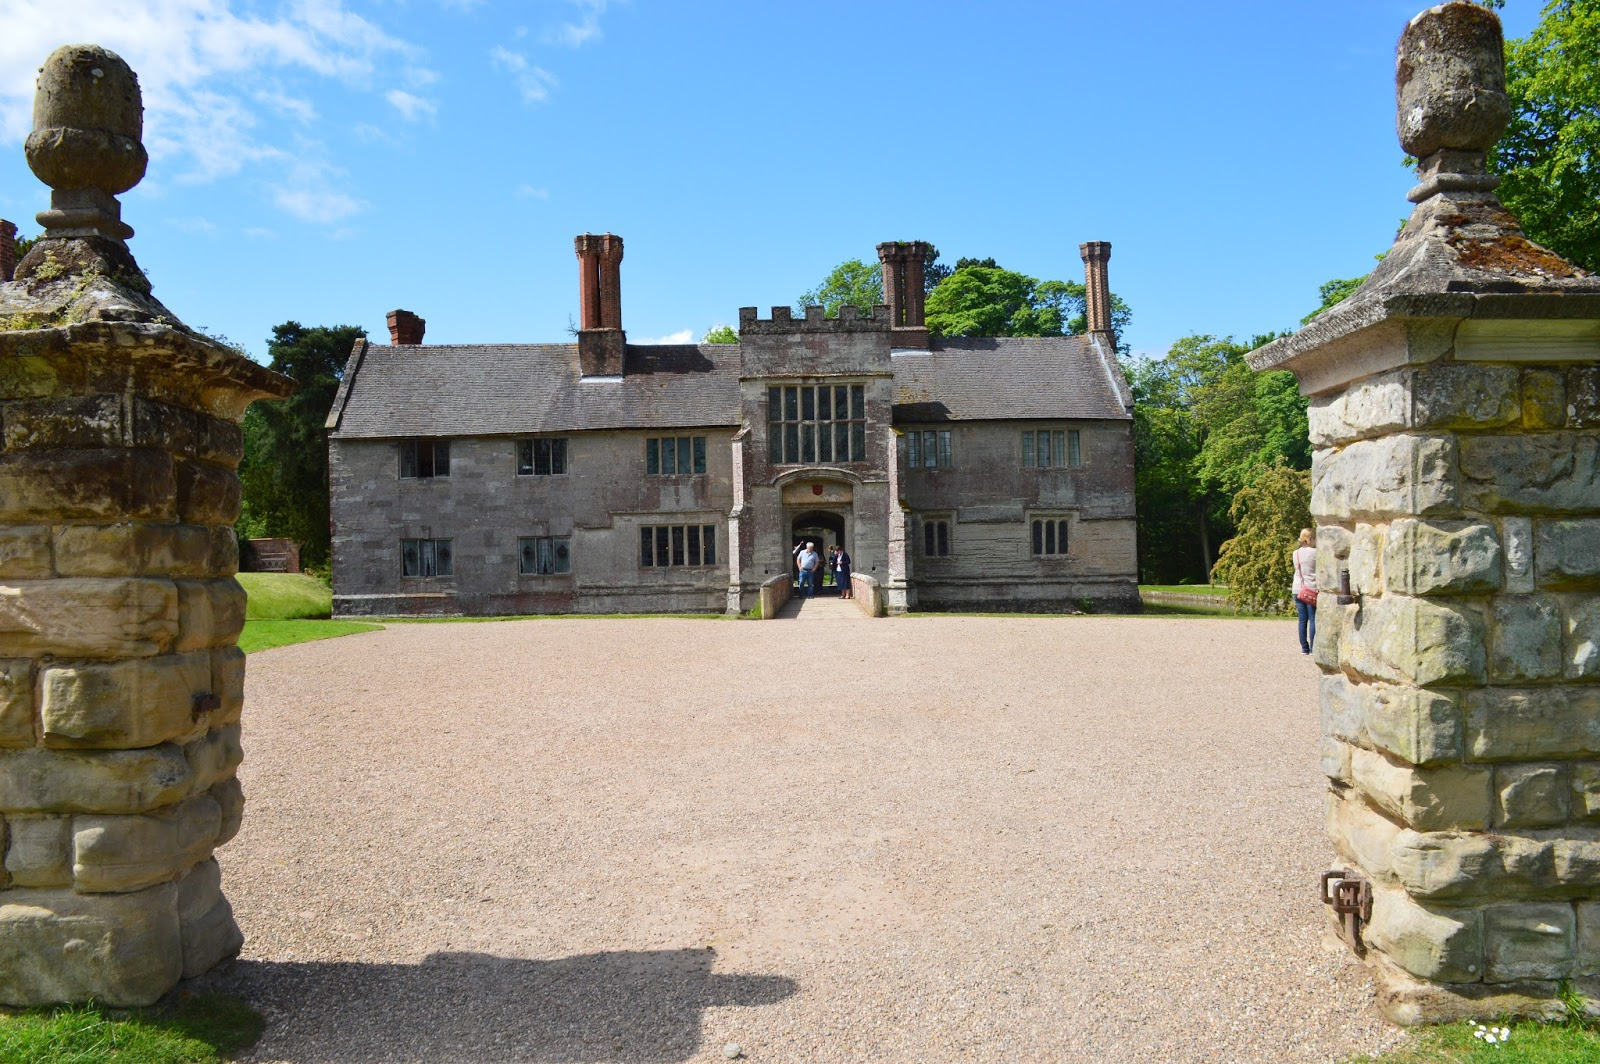 National Trust property Baddesley Clinton, in the Midlands - To Become Mum